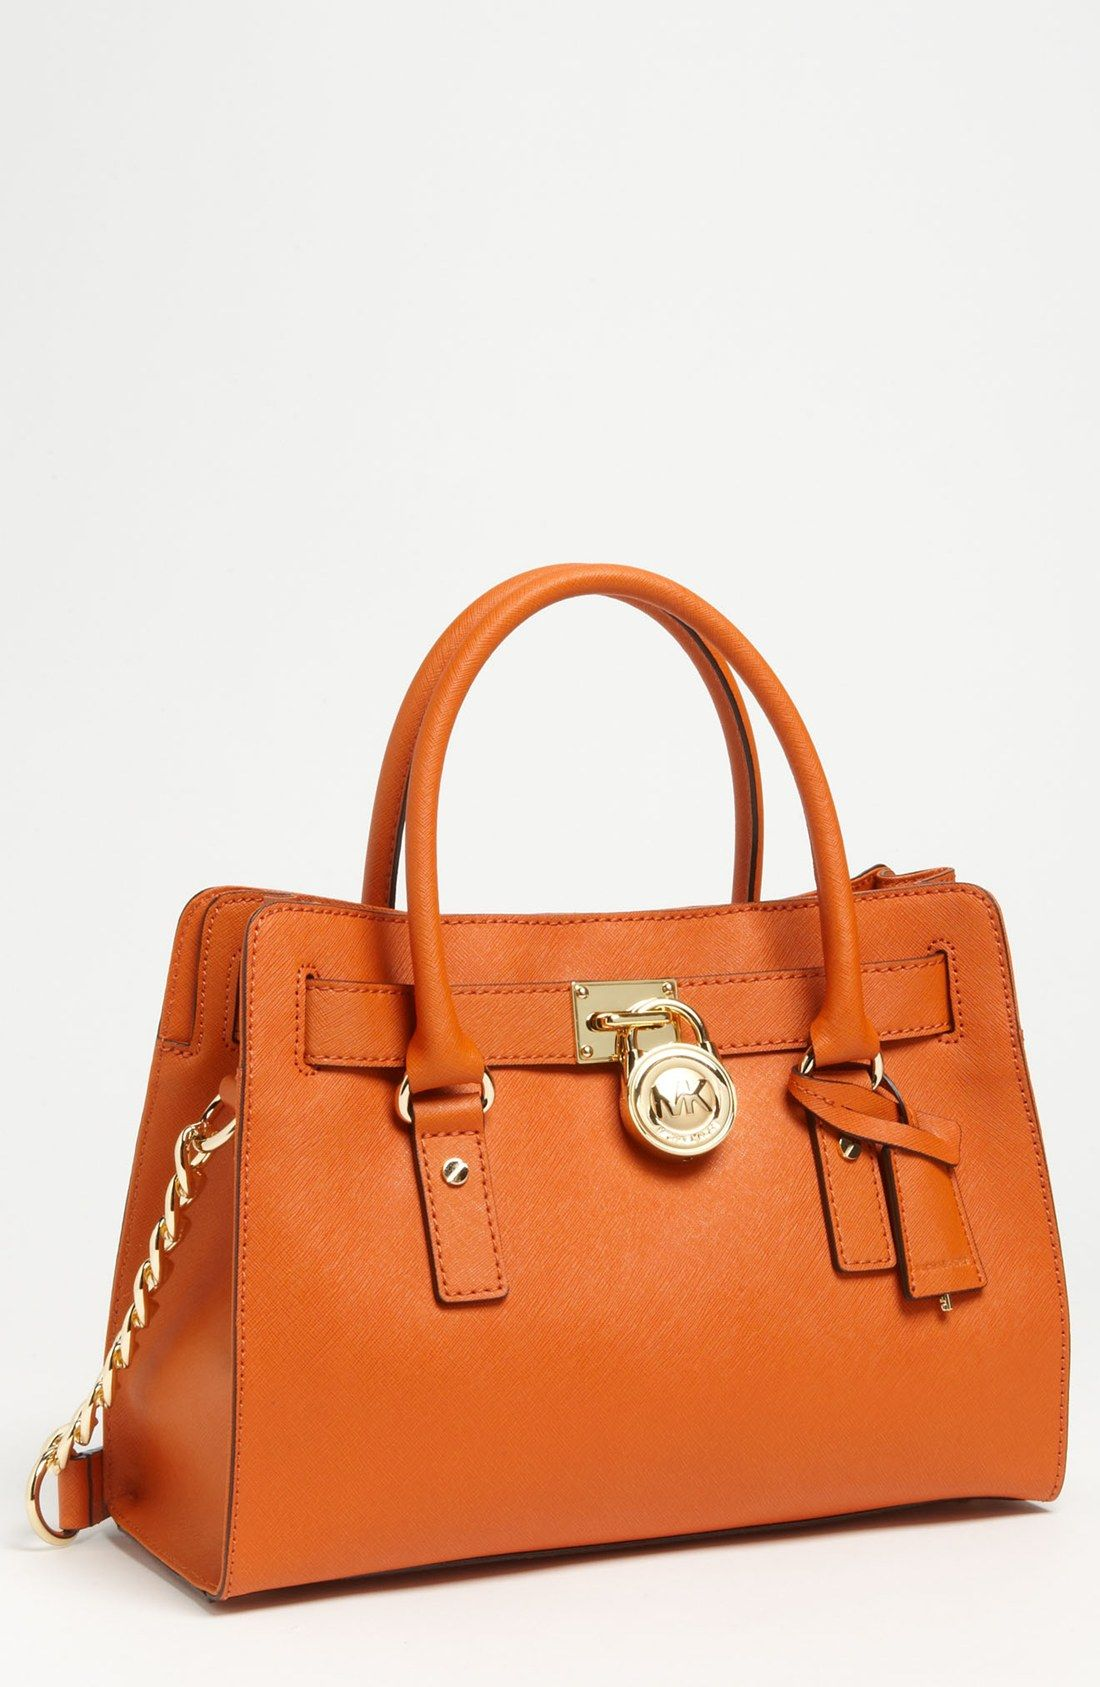 082ba63e79b Michael michael kors Hamilton Saffiano Leather Satchel in Orange (Luggage)  | Lyst